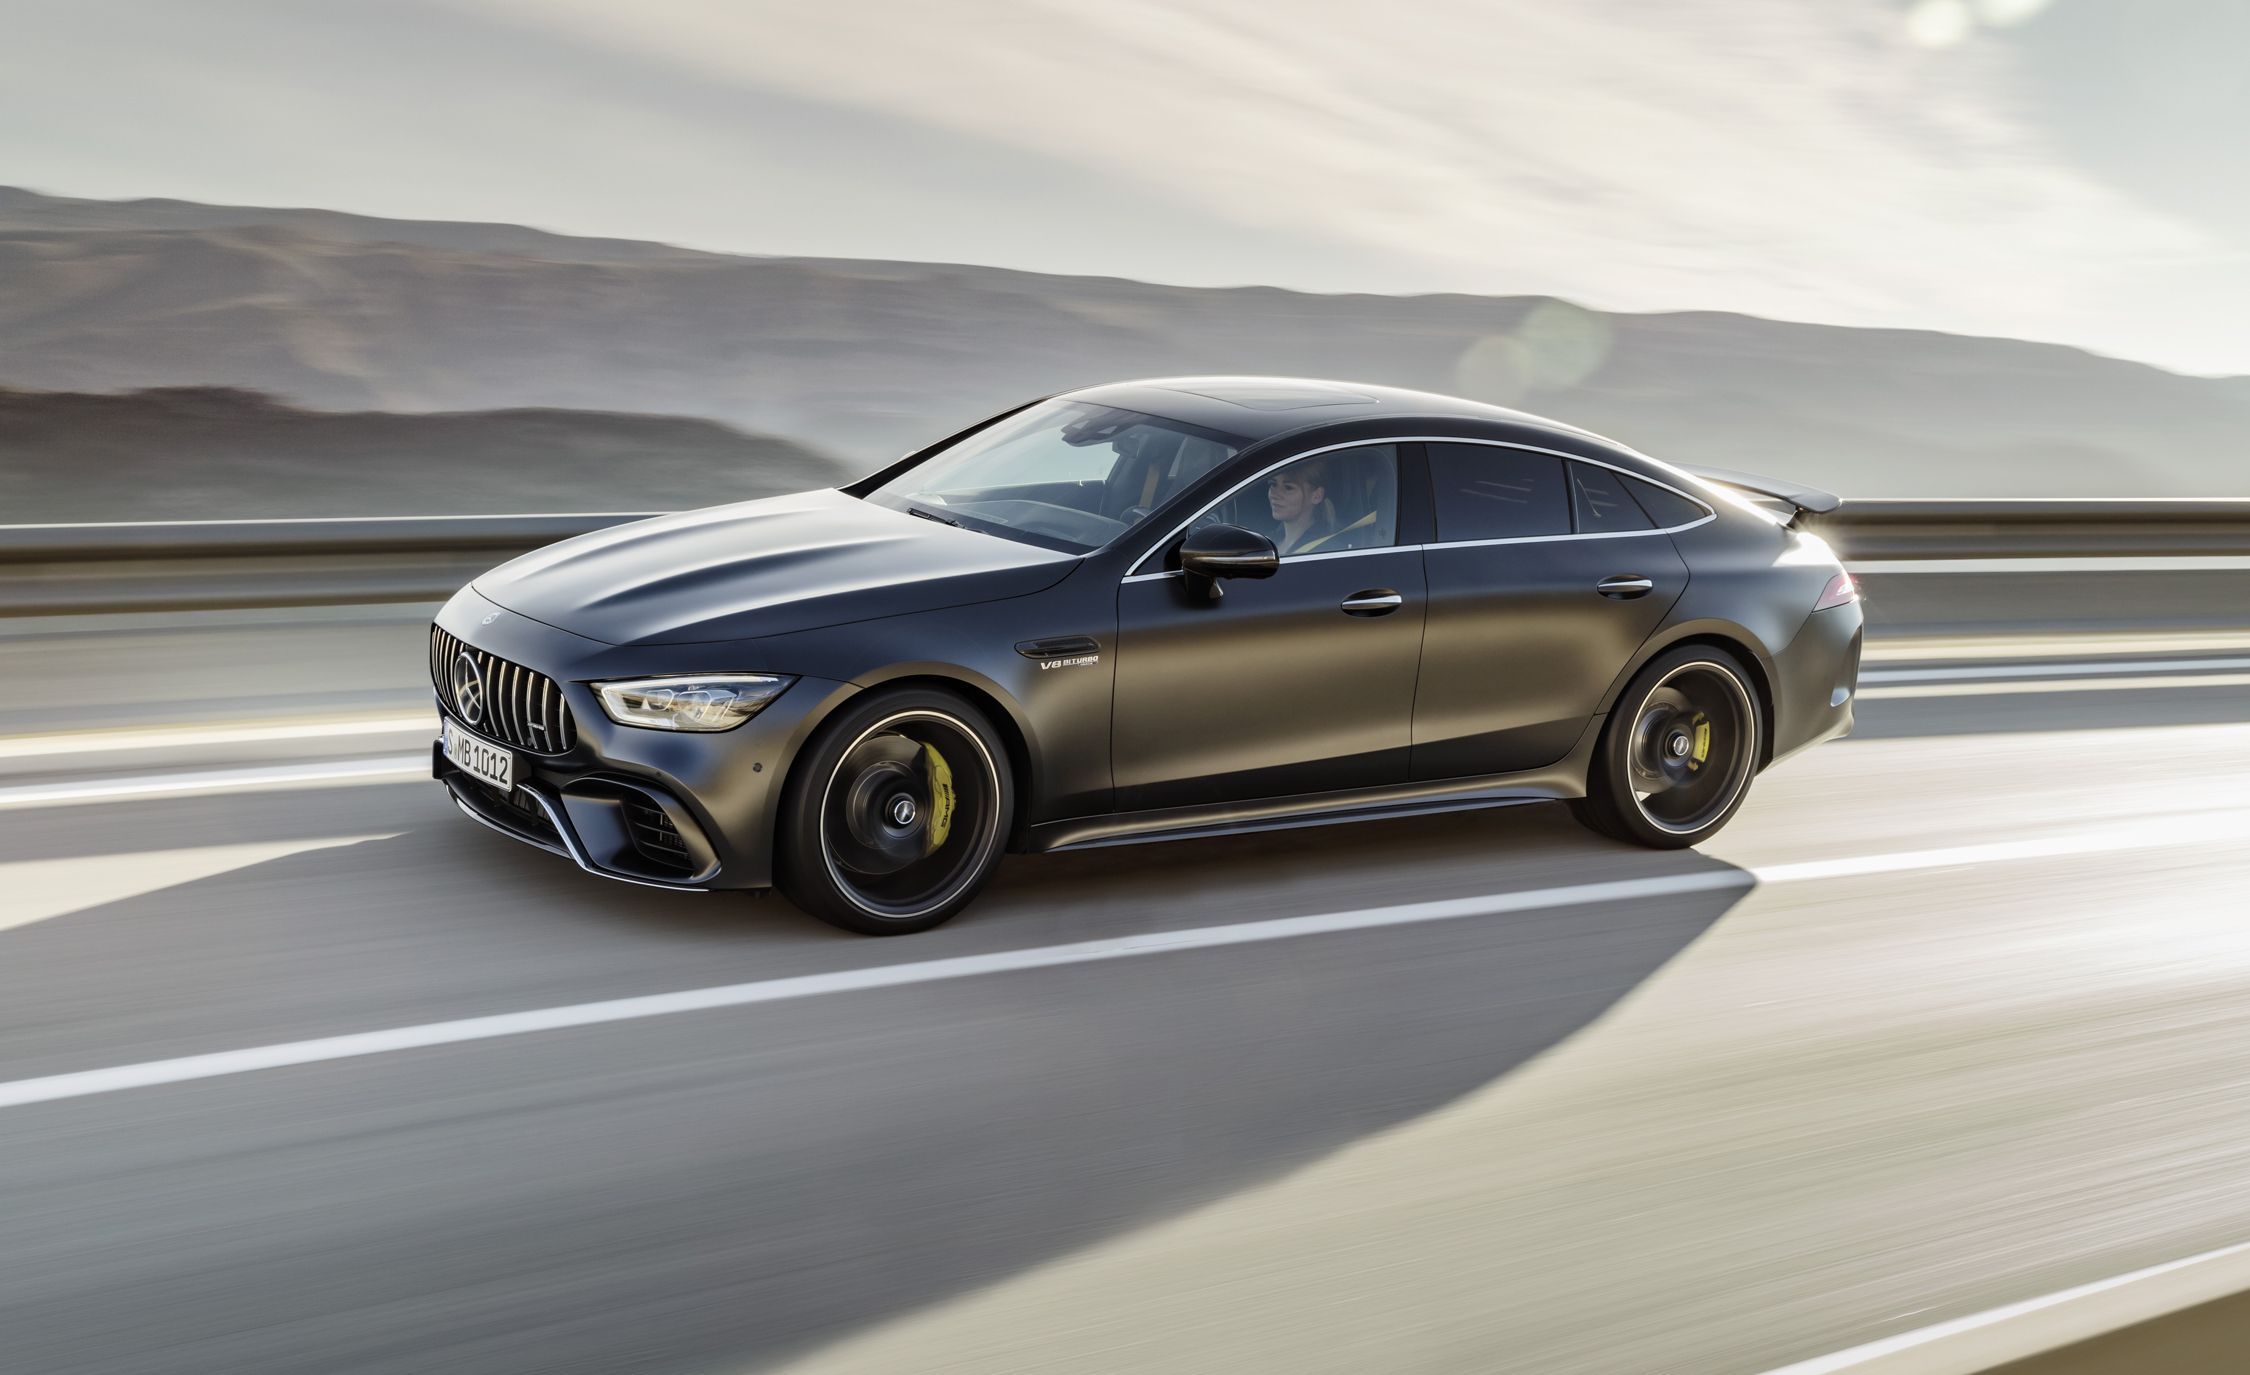 2019 mercedes amg gt 4 door coupe officially unveiled packs up to 630 hp news car and driver photo 703884 s original